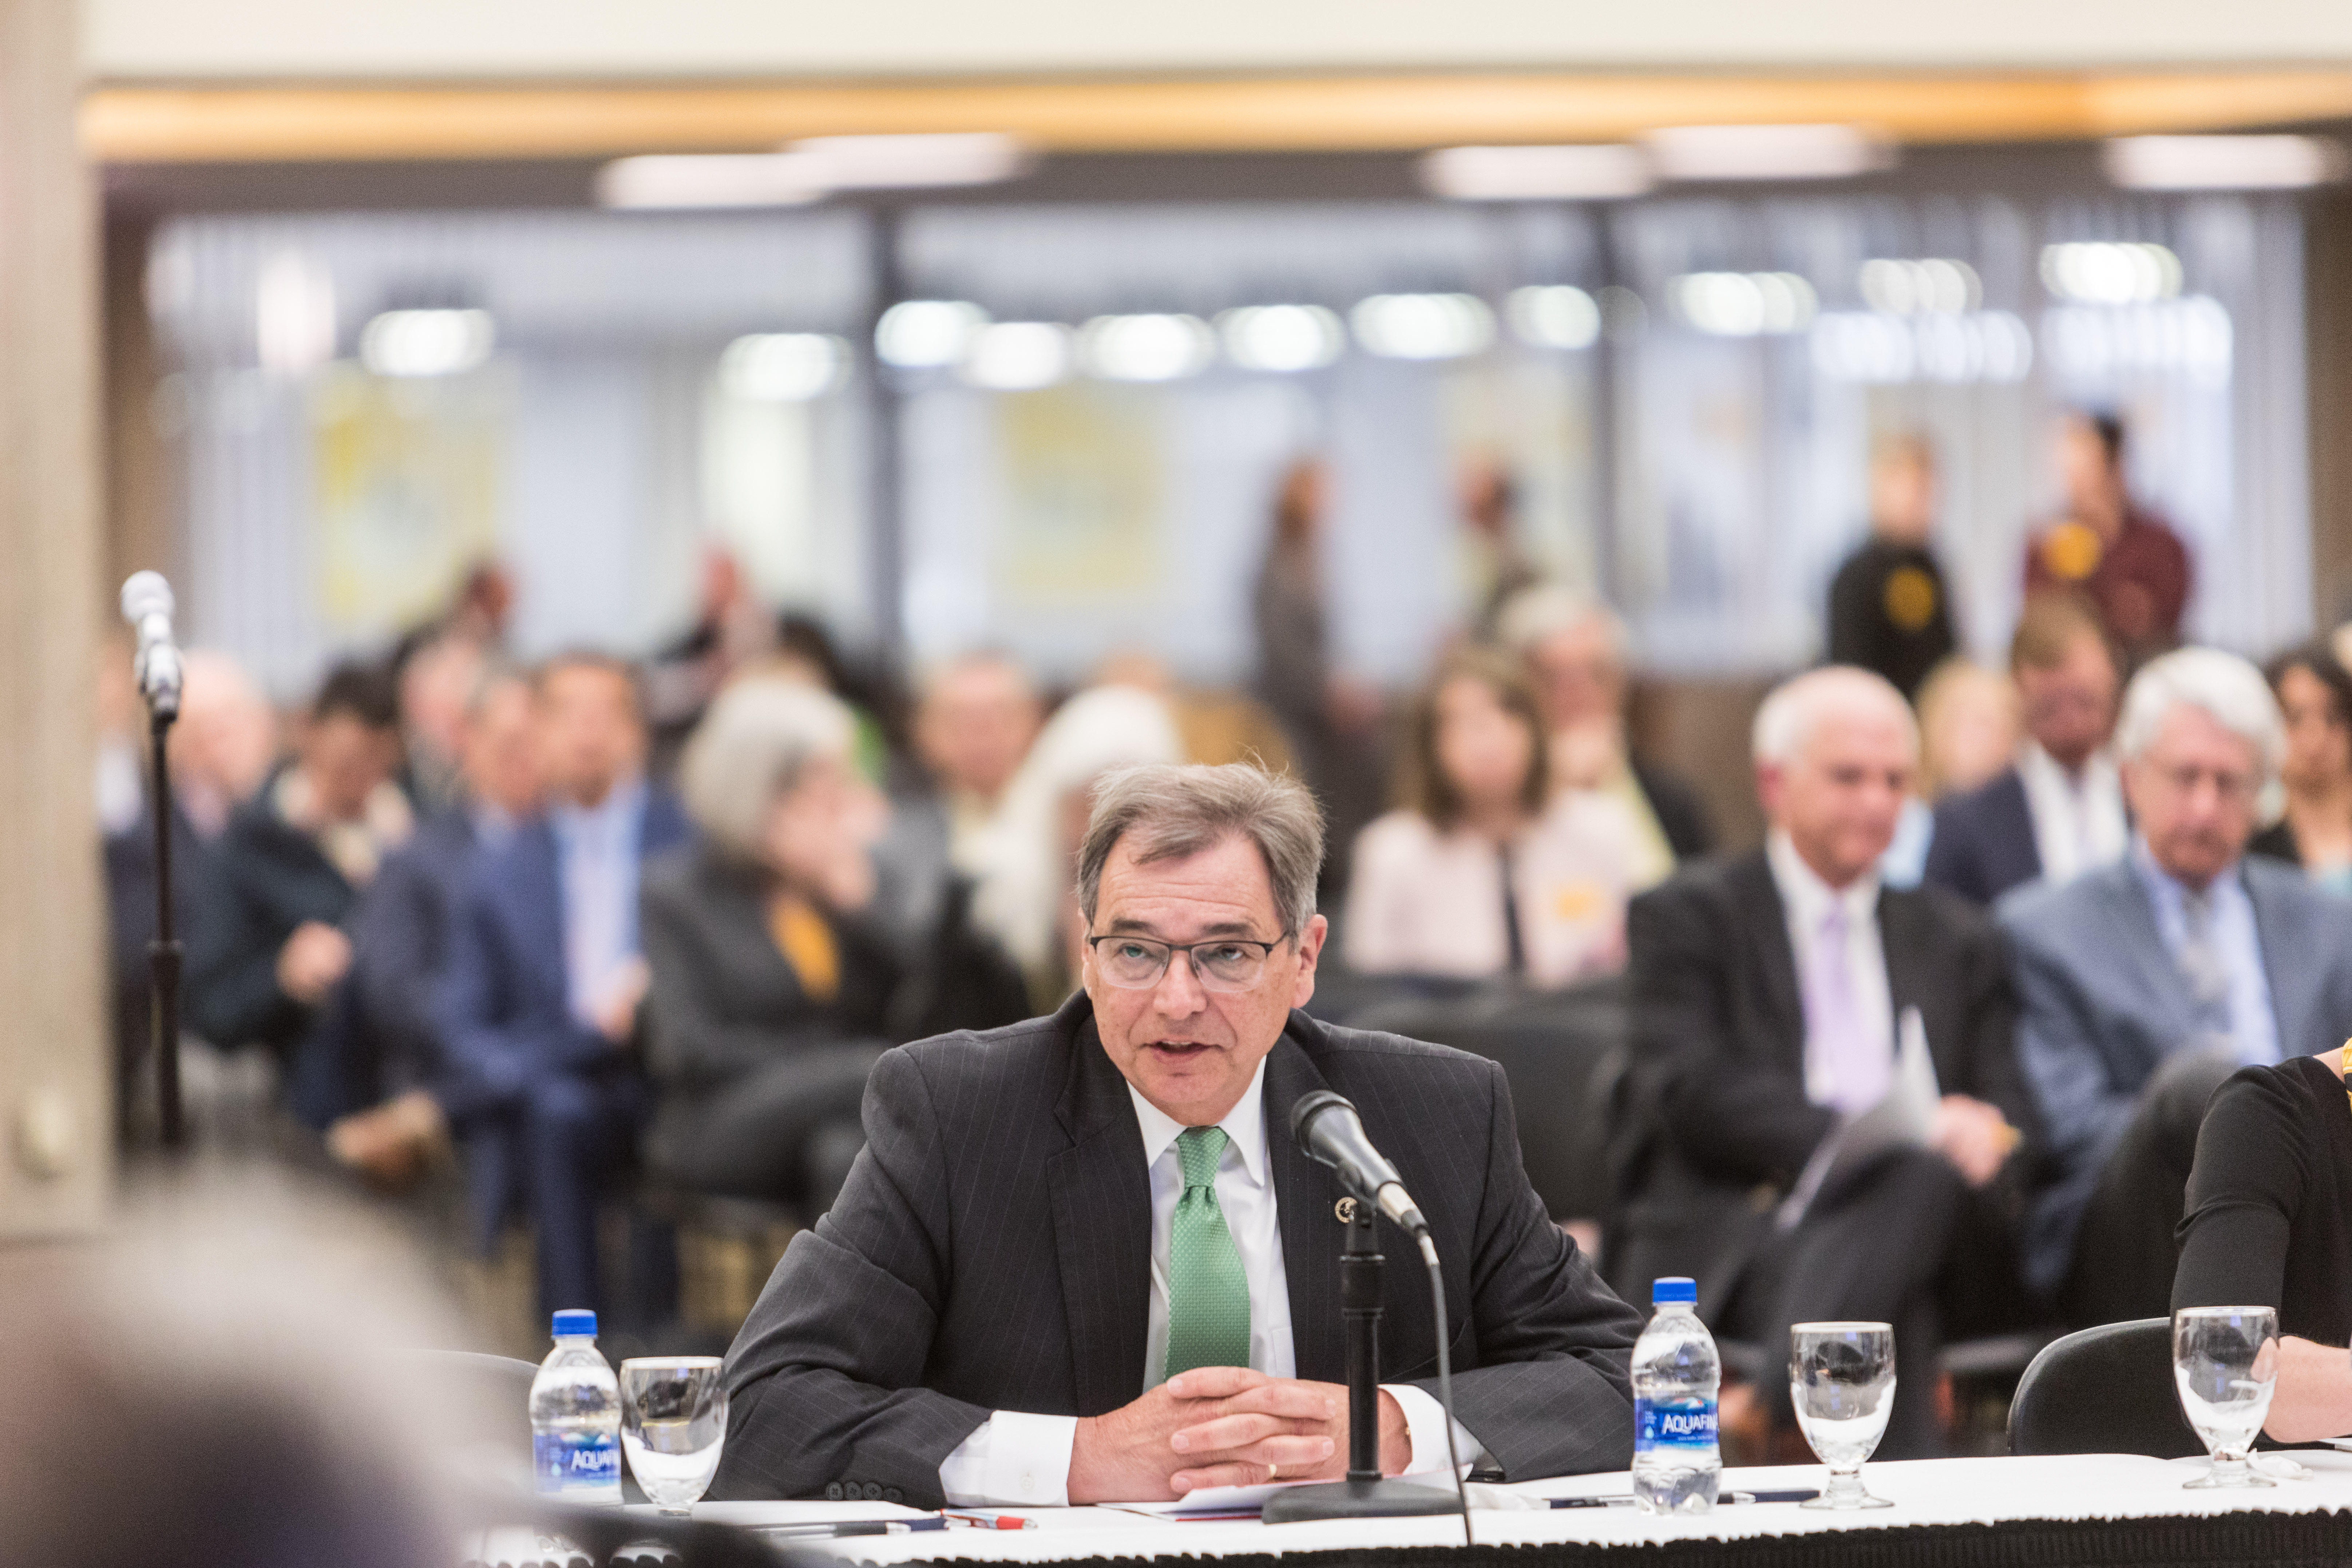 Photo of UW-Green Bay Chancellor Gary Miller speaking at the Board of Regents meeting hosted by UW-Milwaukee on June 6, 2019. (Photo by Mikaila Dusenberry/UW-Milwaukee)